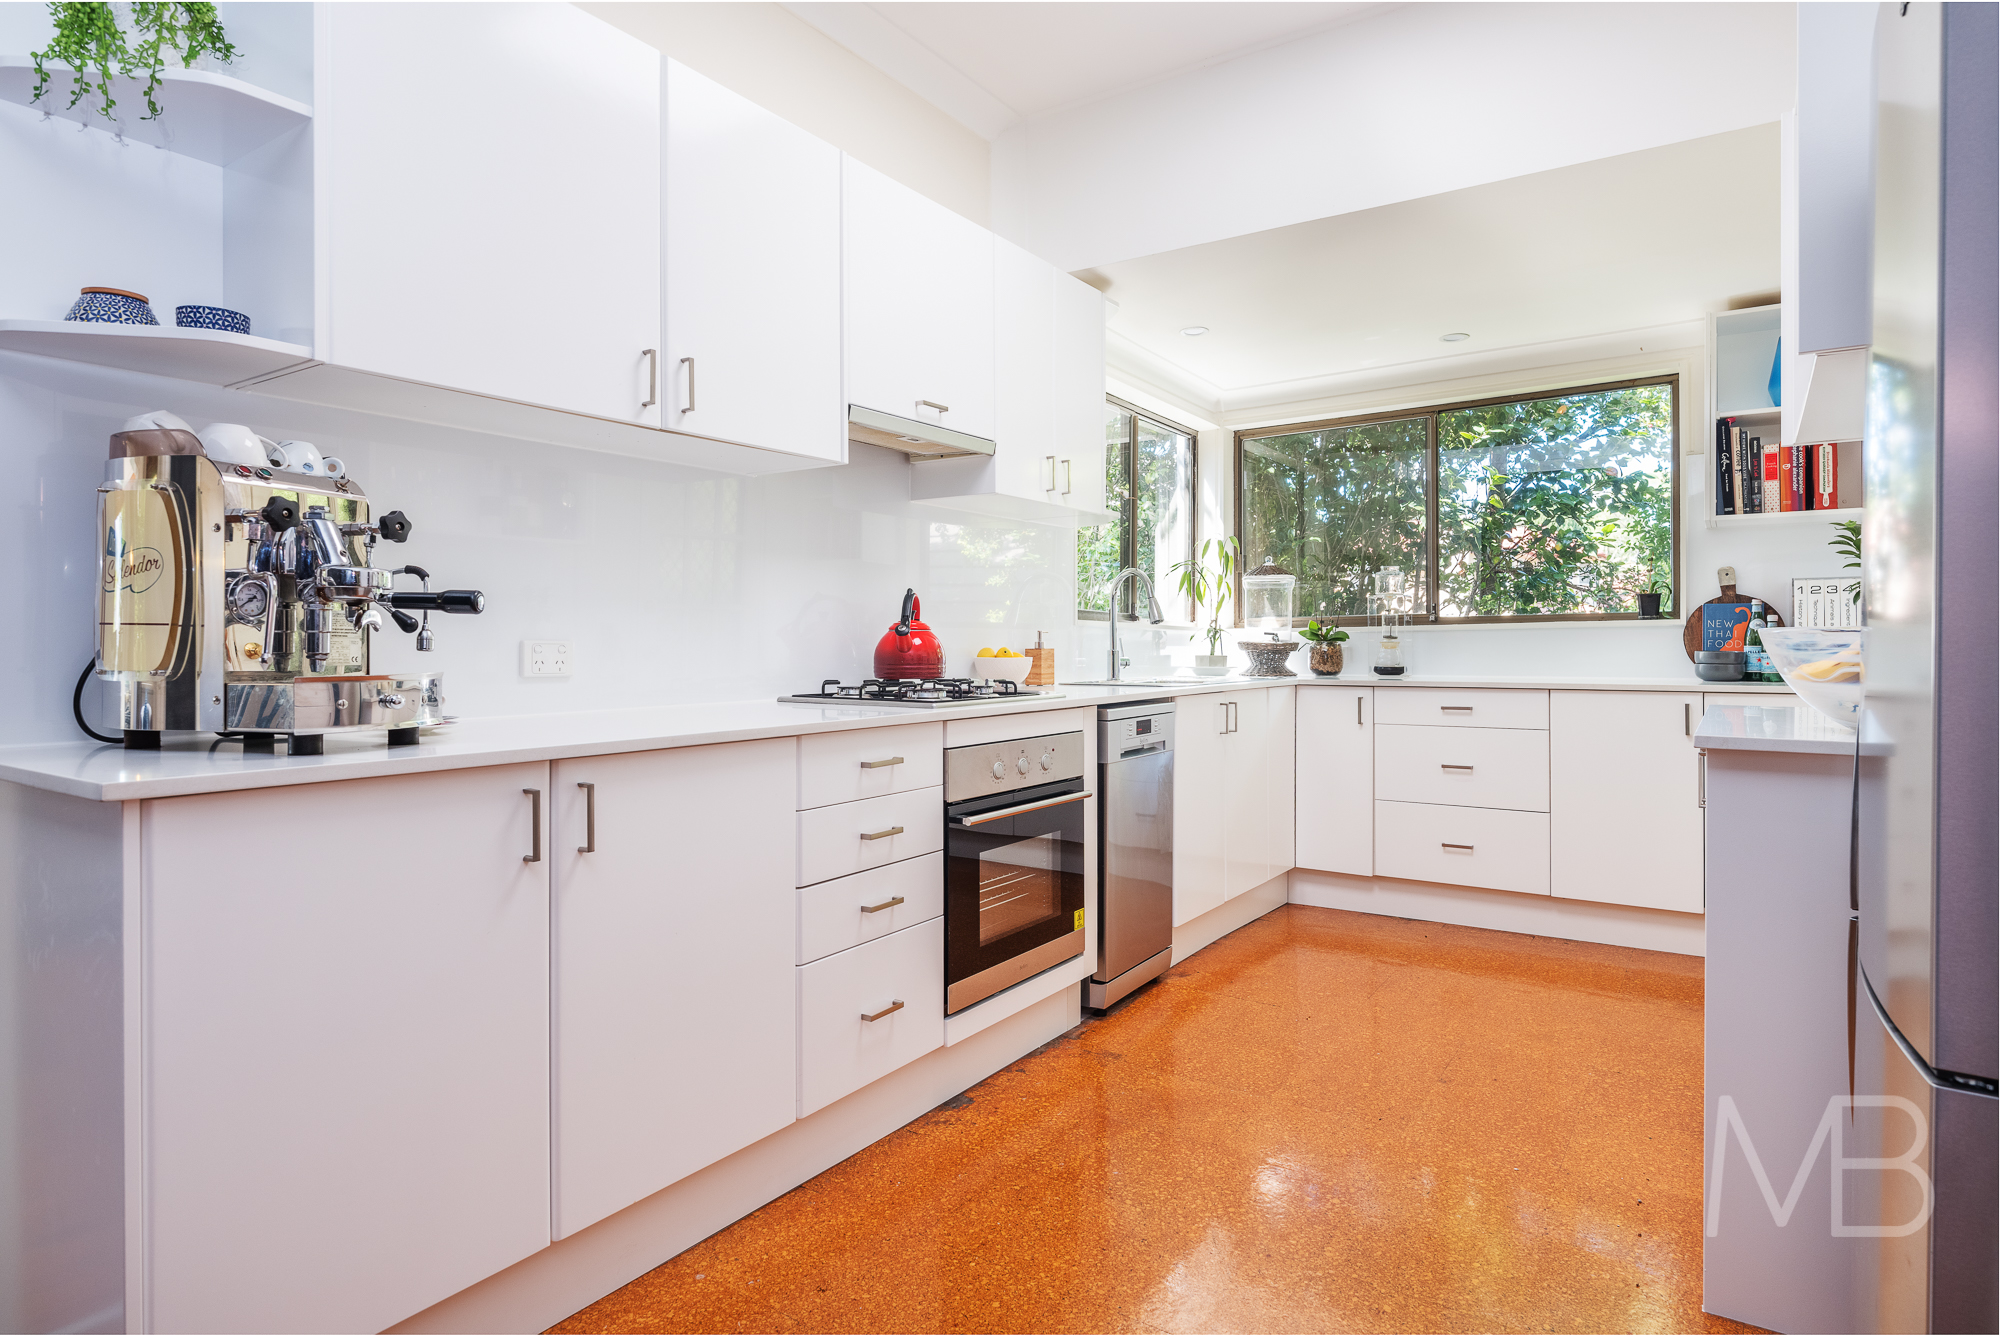 113 Bobbin Head Road, Turramurra, NSW 2074